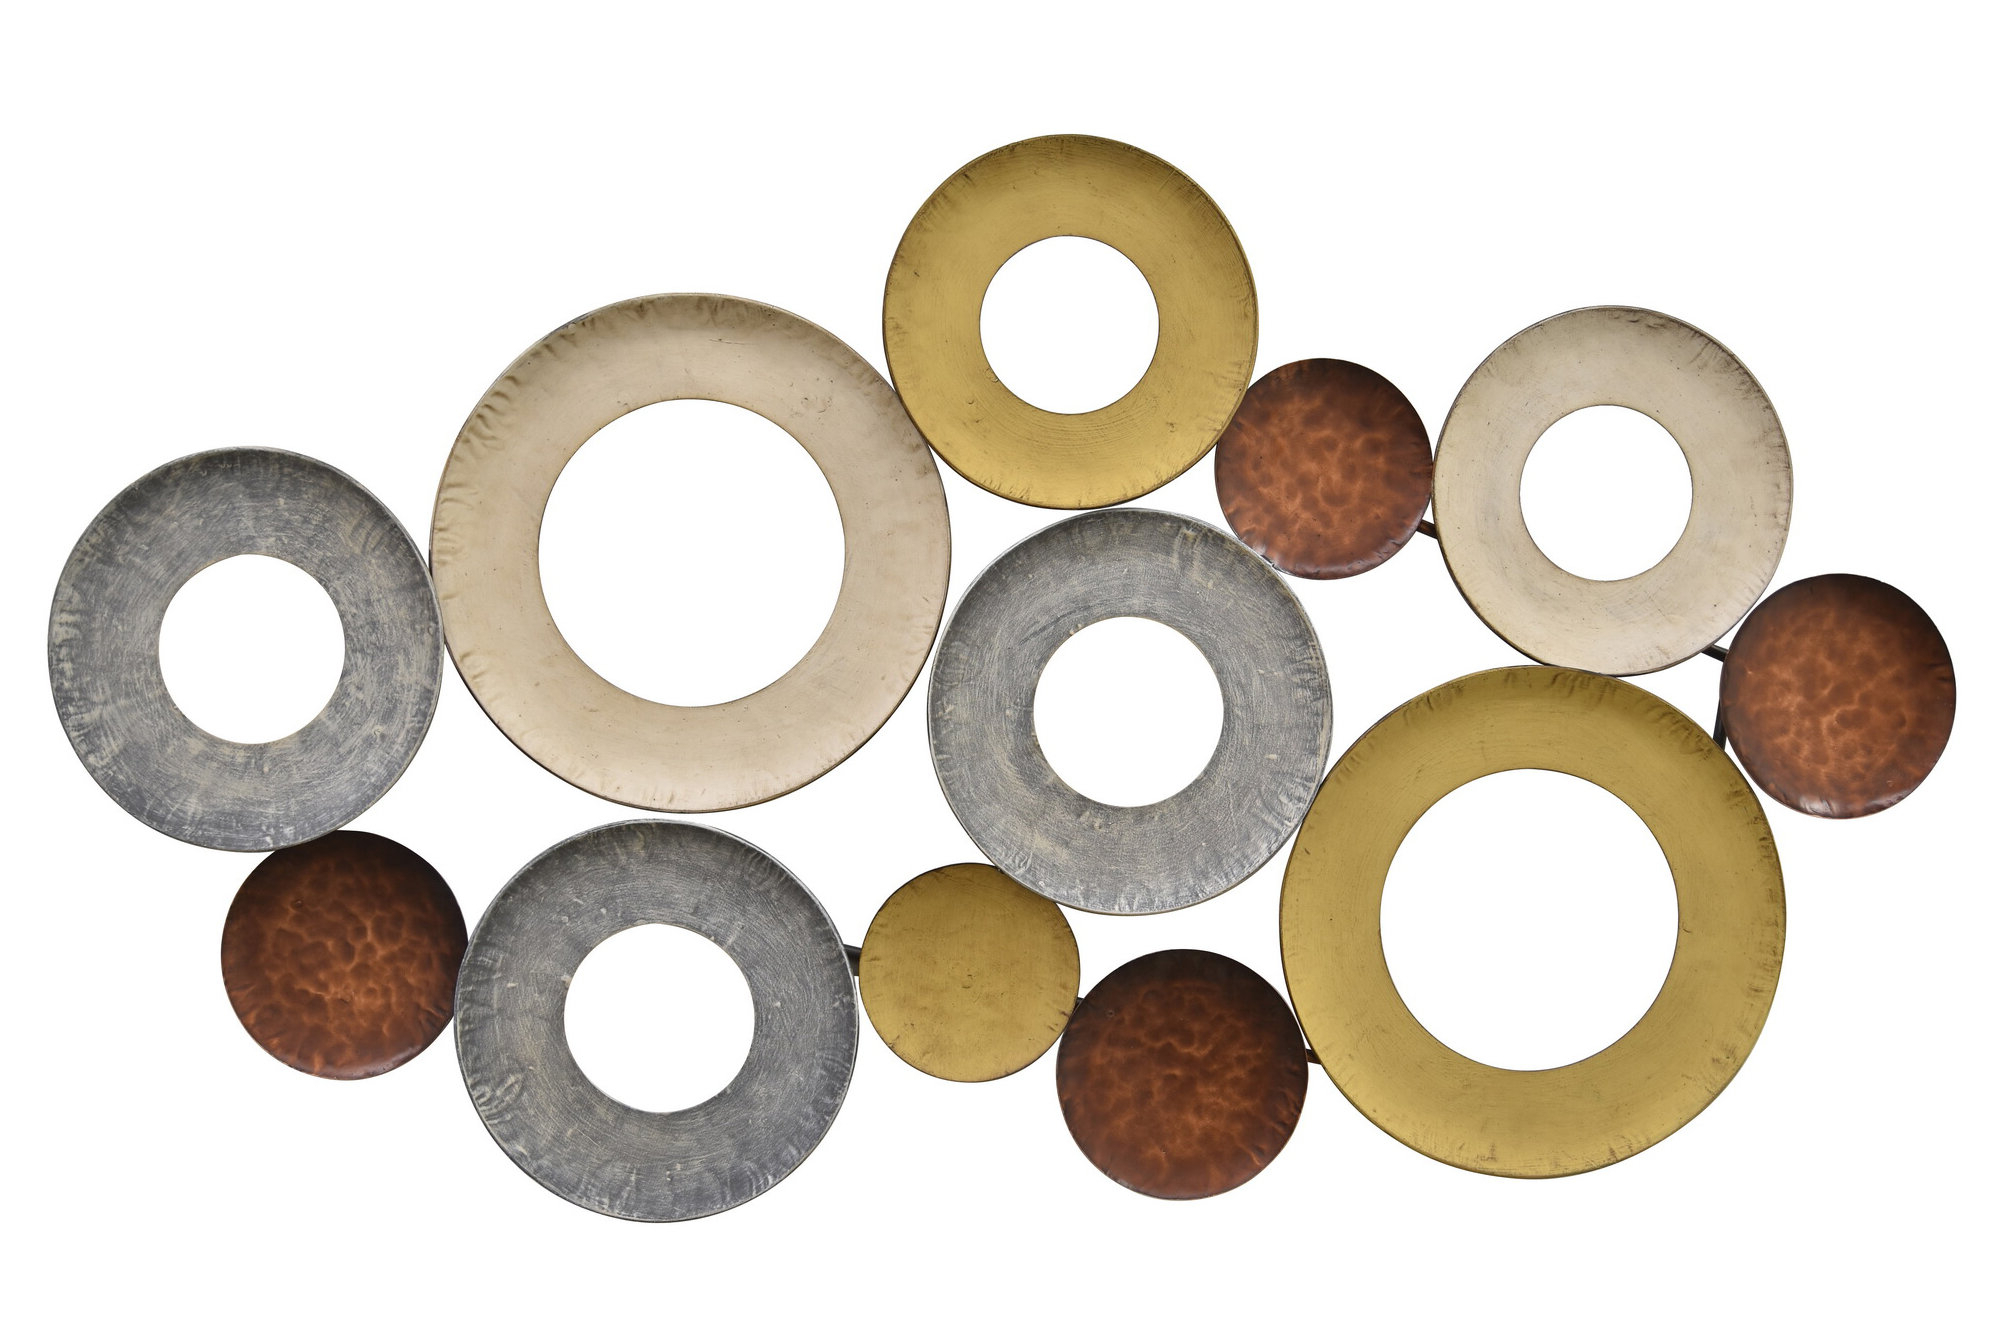 Rustic Metal Wall Décor By Winston Porter In Most Popular Metal Wall Décor (View 4 of 20)